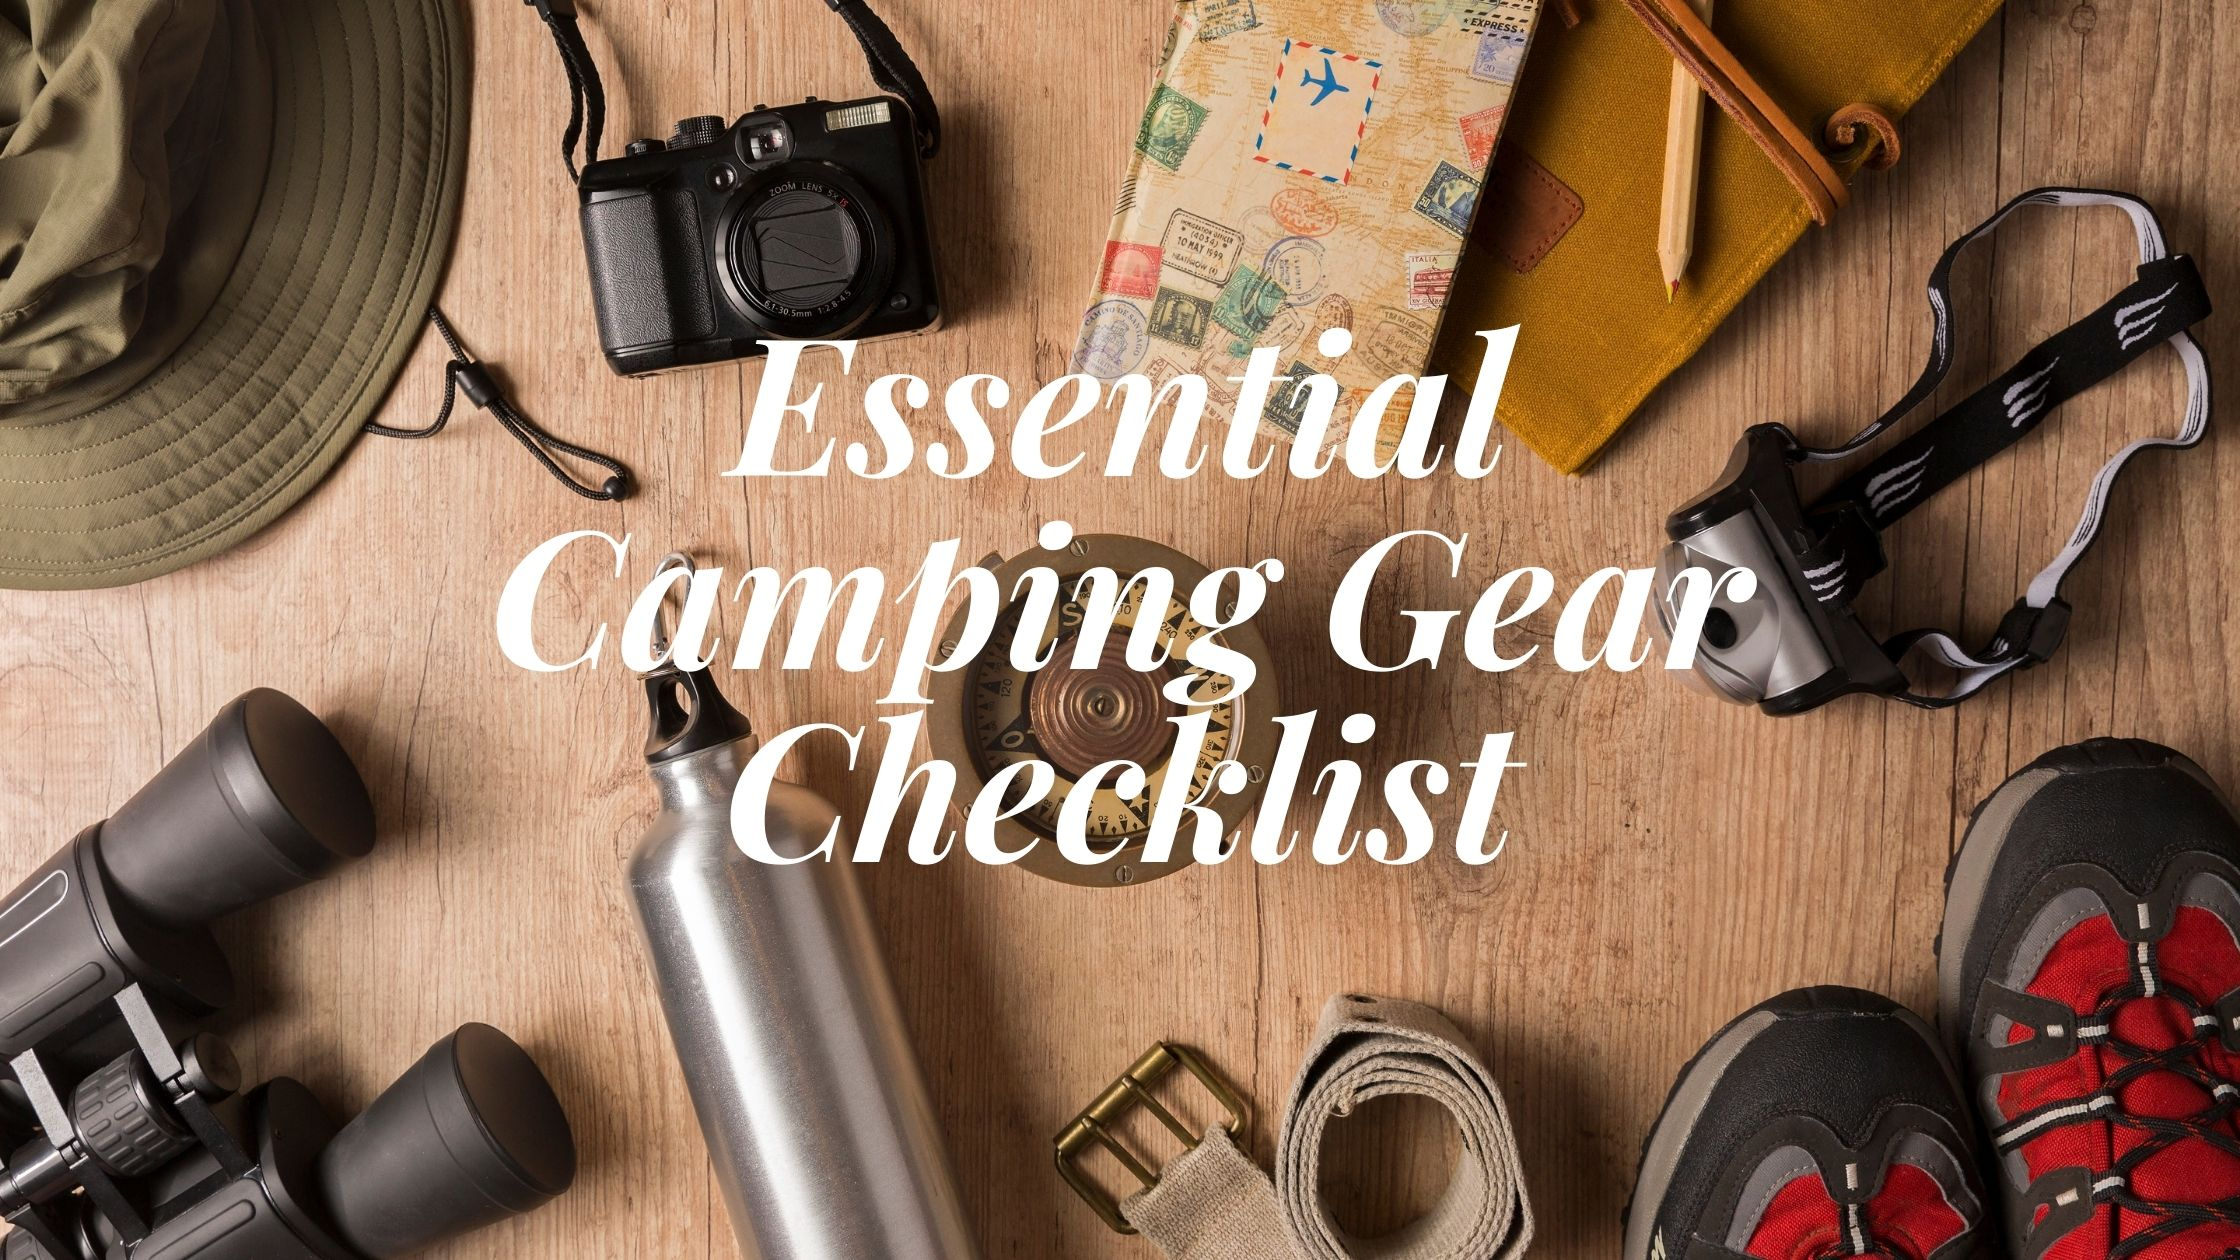 Essential Camping Gear Checklist